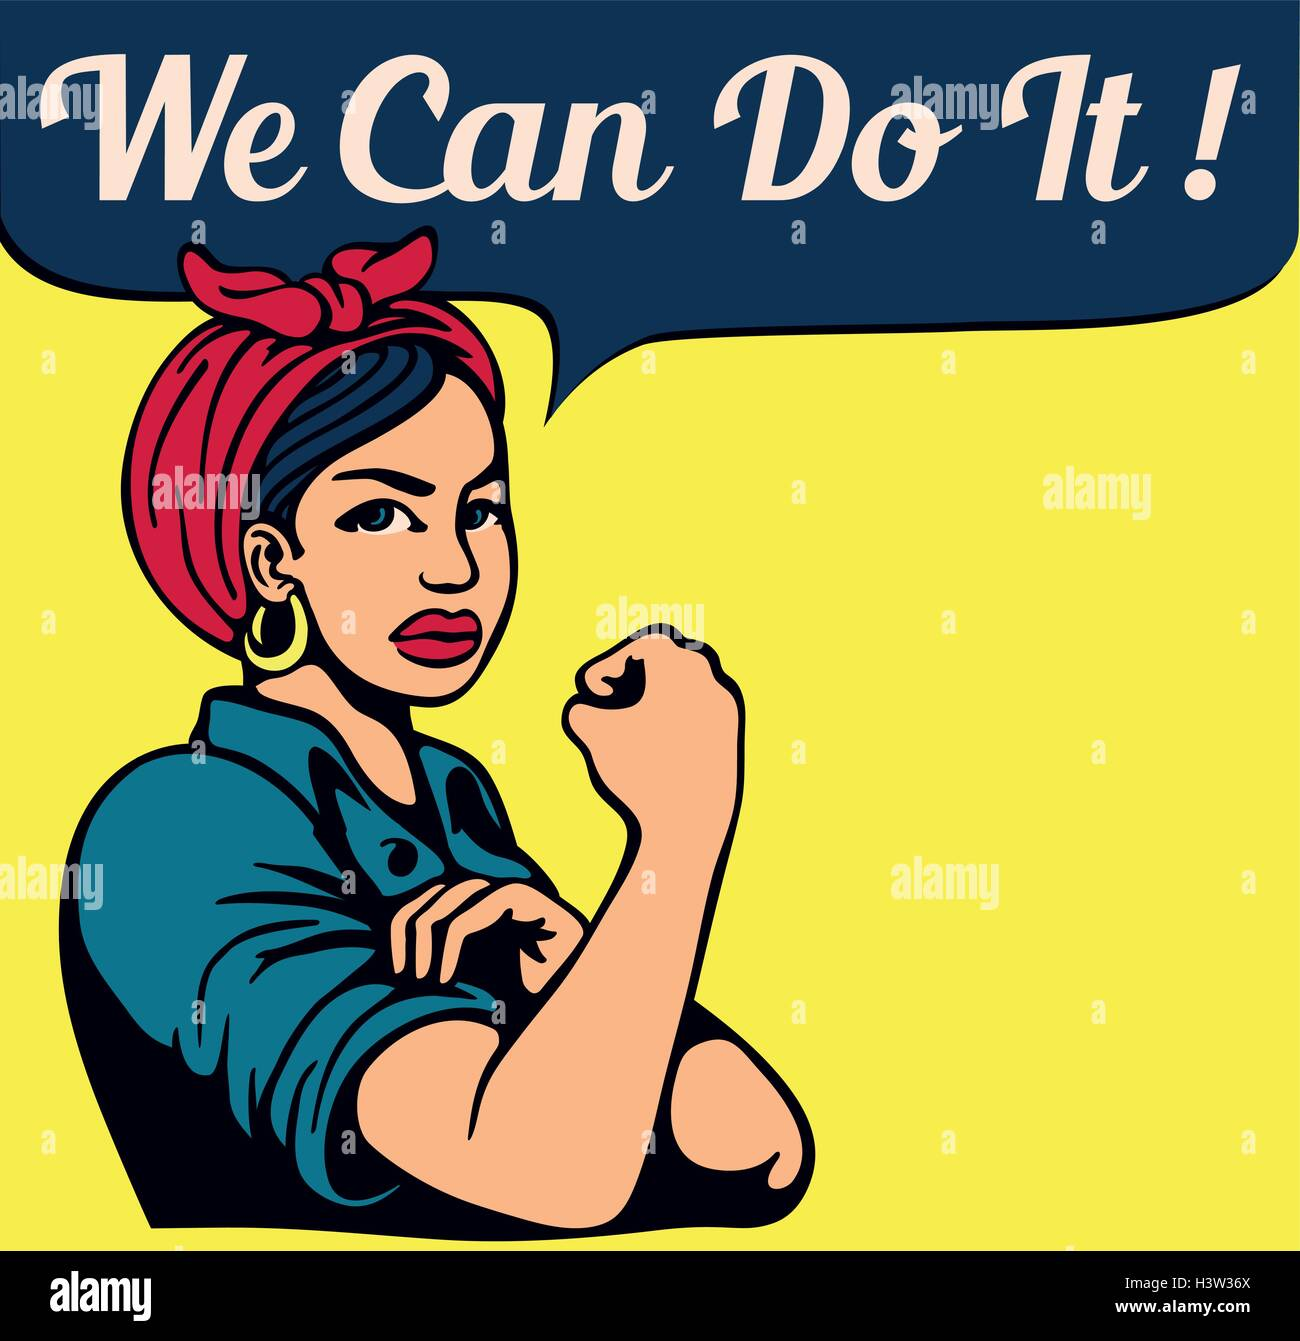 Feminist iconic woman rolling up her sleeves, women's liberation, gender equality, female power, vintage poster, - Stock Image